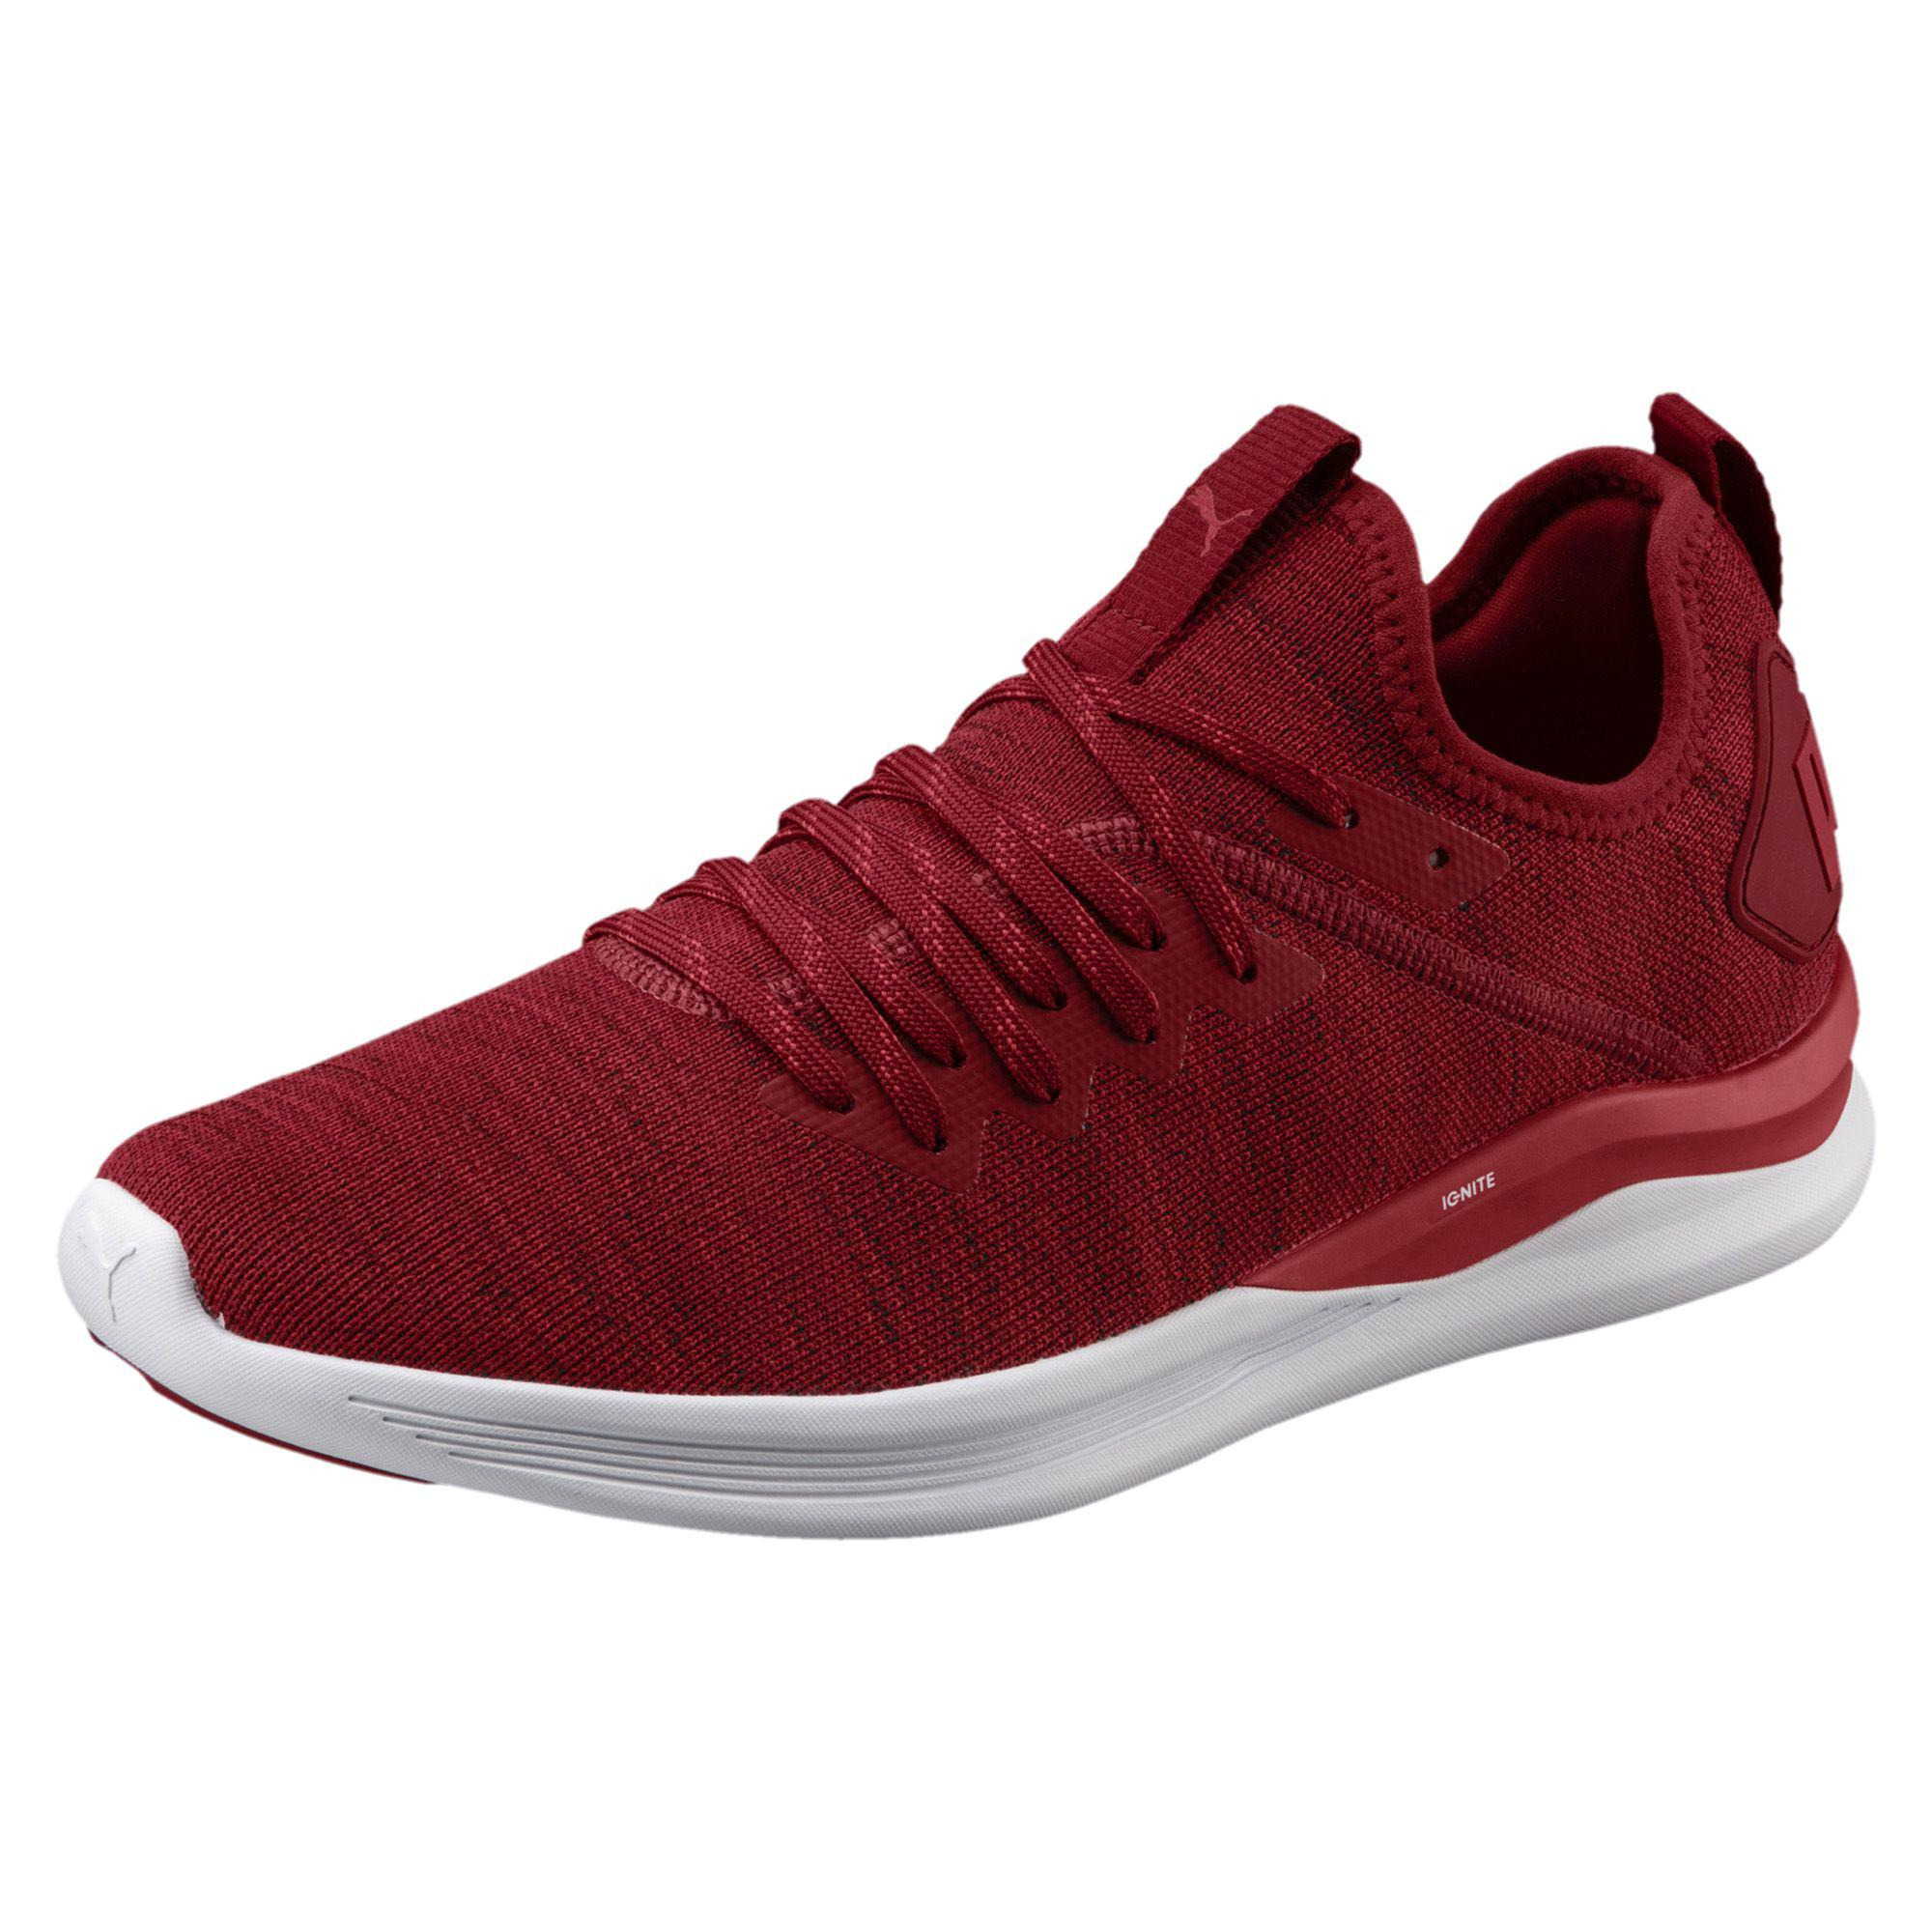 40e004d477d Lyst - PUMA Ignite Flash Evoknit Men s Training Shoes in Red for Men